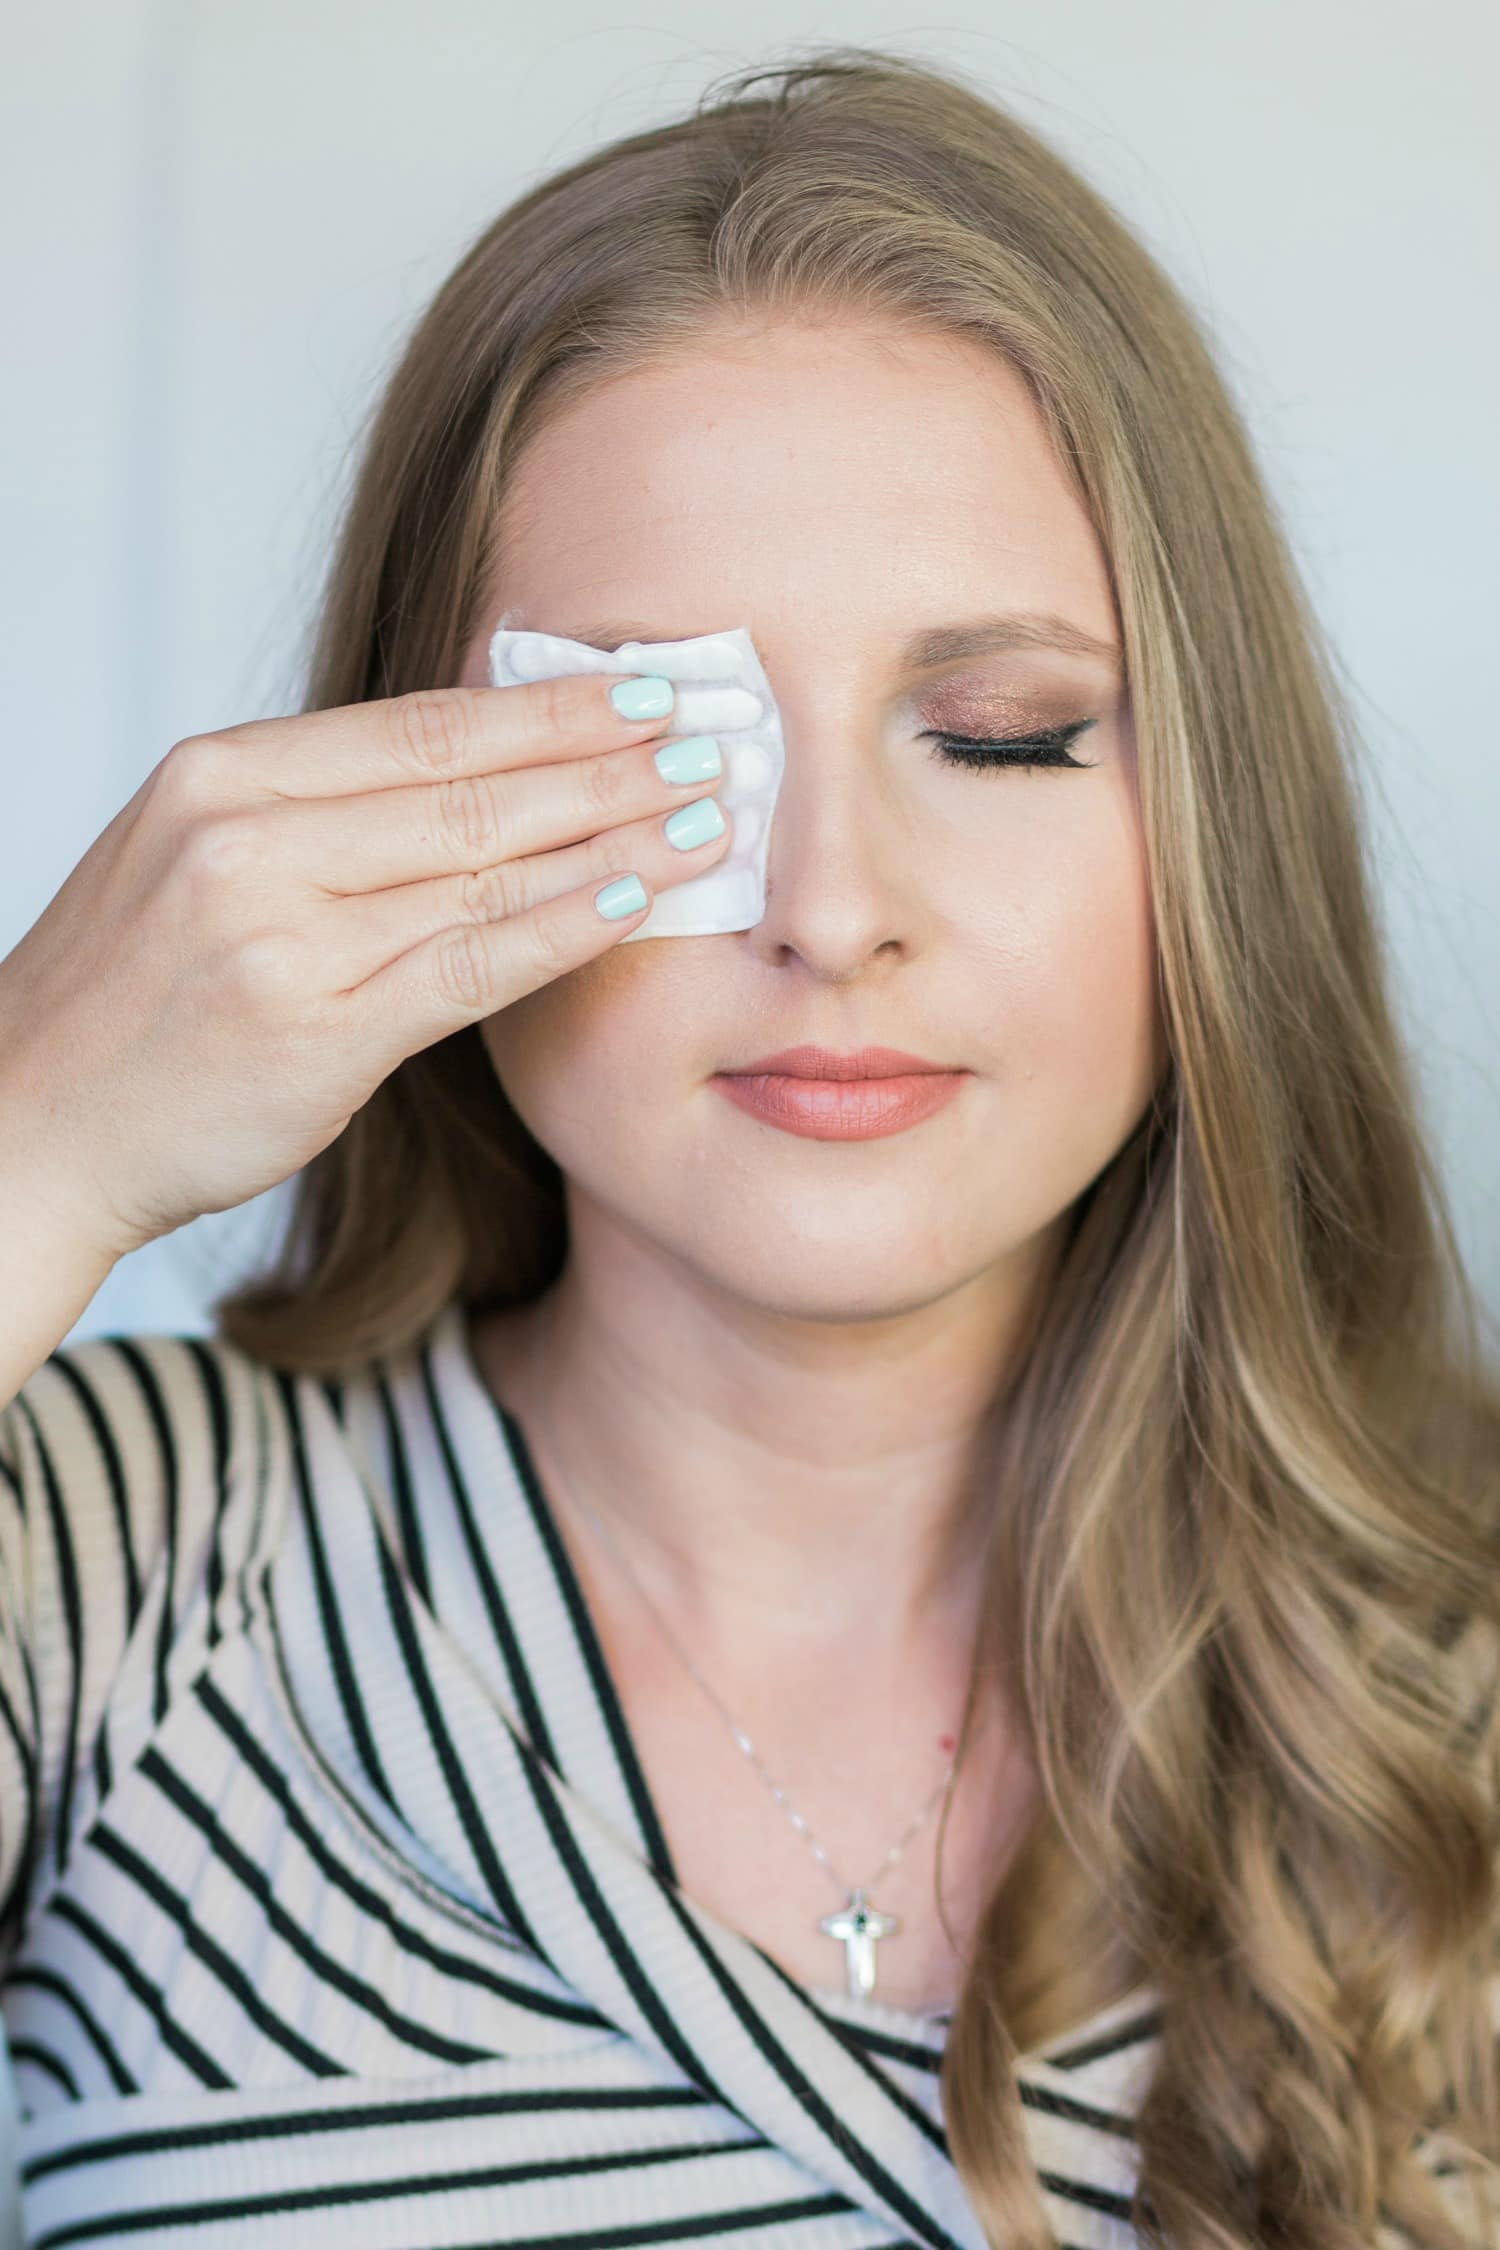 How to remove every last bit of your makeup - even waterproof makeup, waterproof mascara, and lash glue) without irritating your skin! | Click through this image to see the three best makeup removers on the makeup in this post by beauty blogger Ashley Brooke Nicholas.